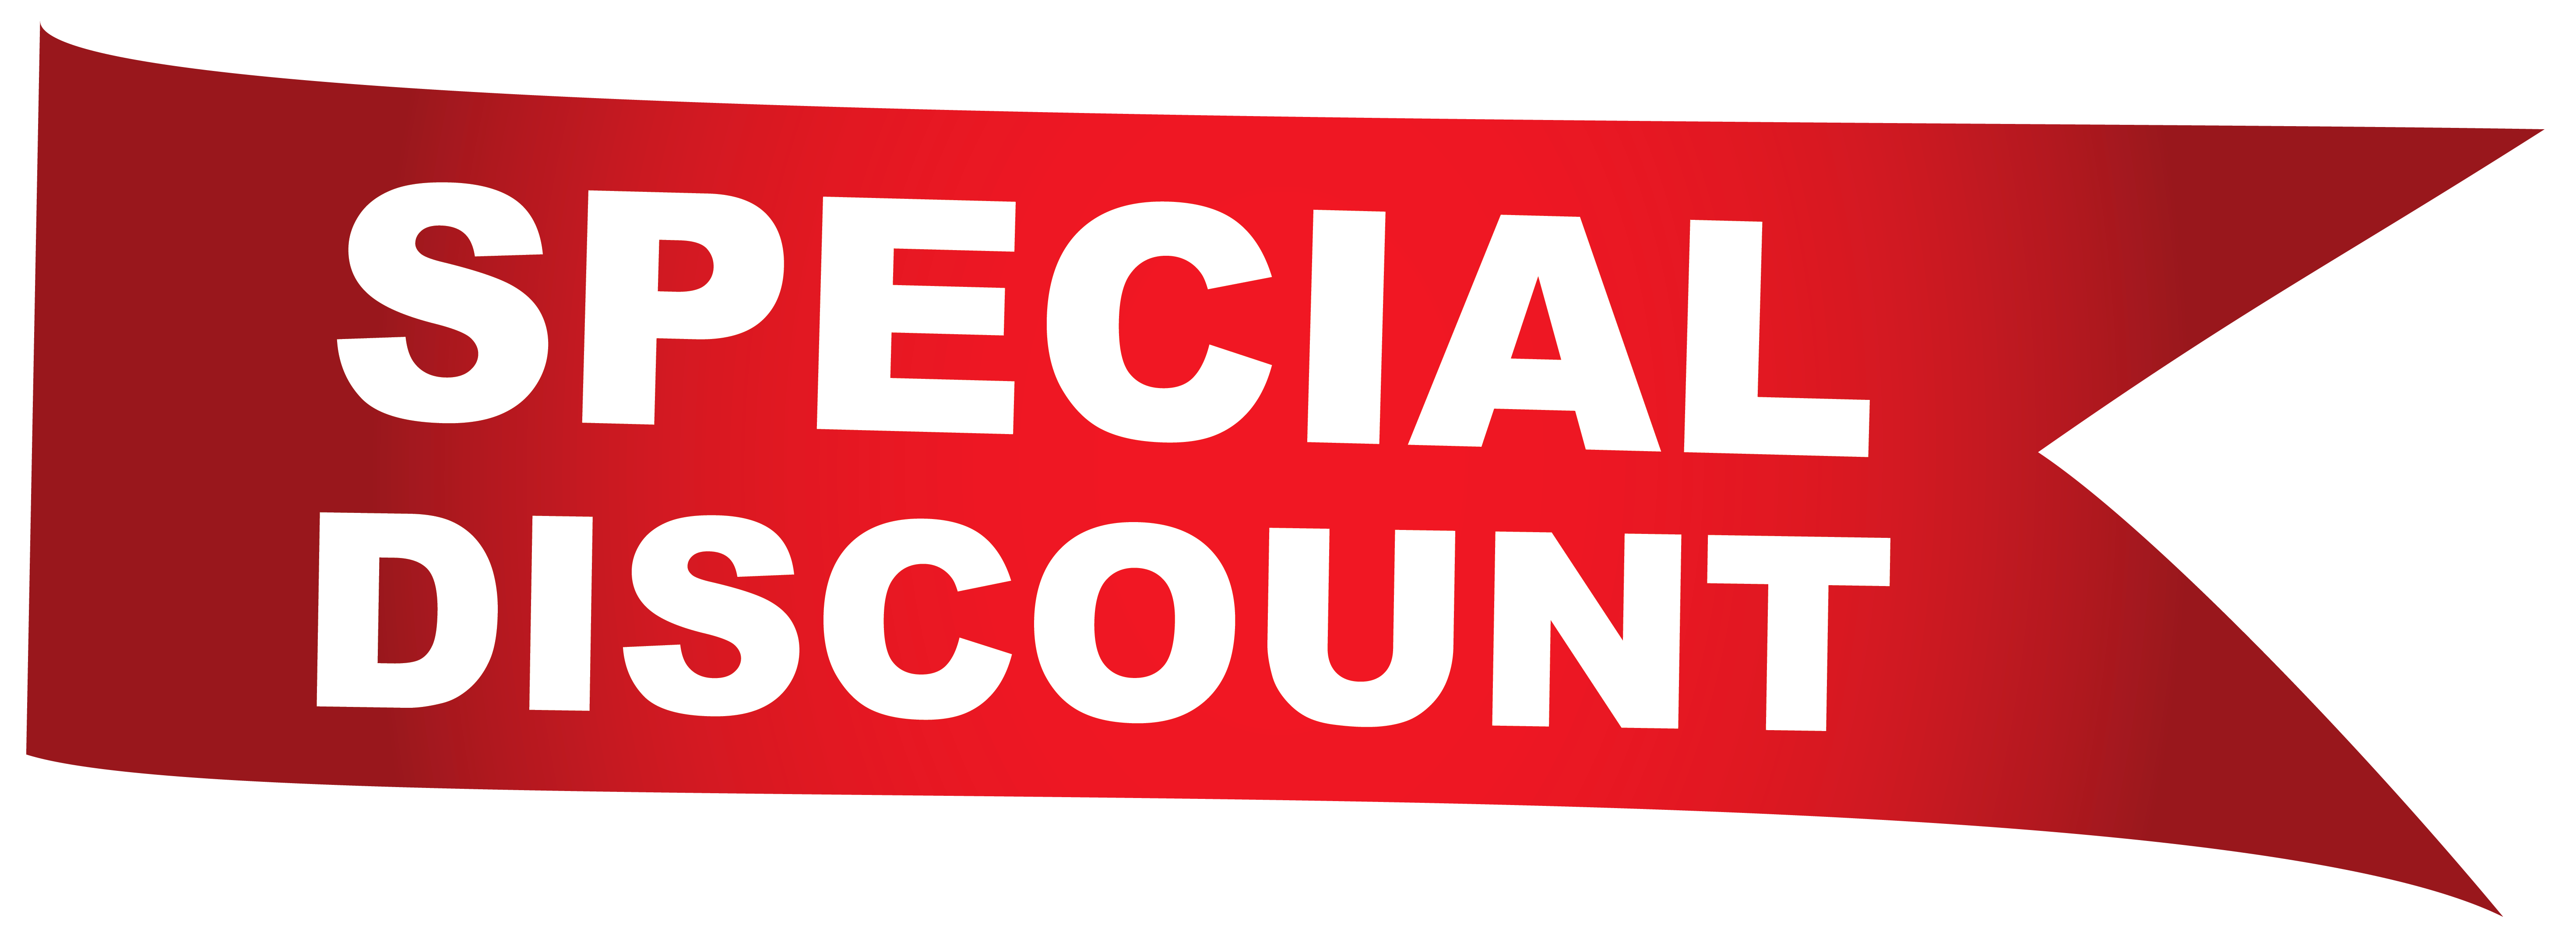 Sale clipart special. Red discount sticker png